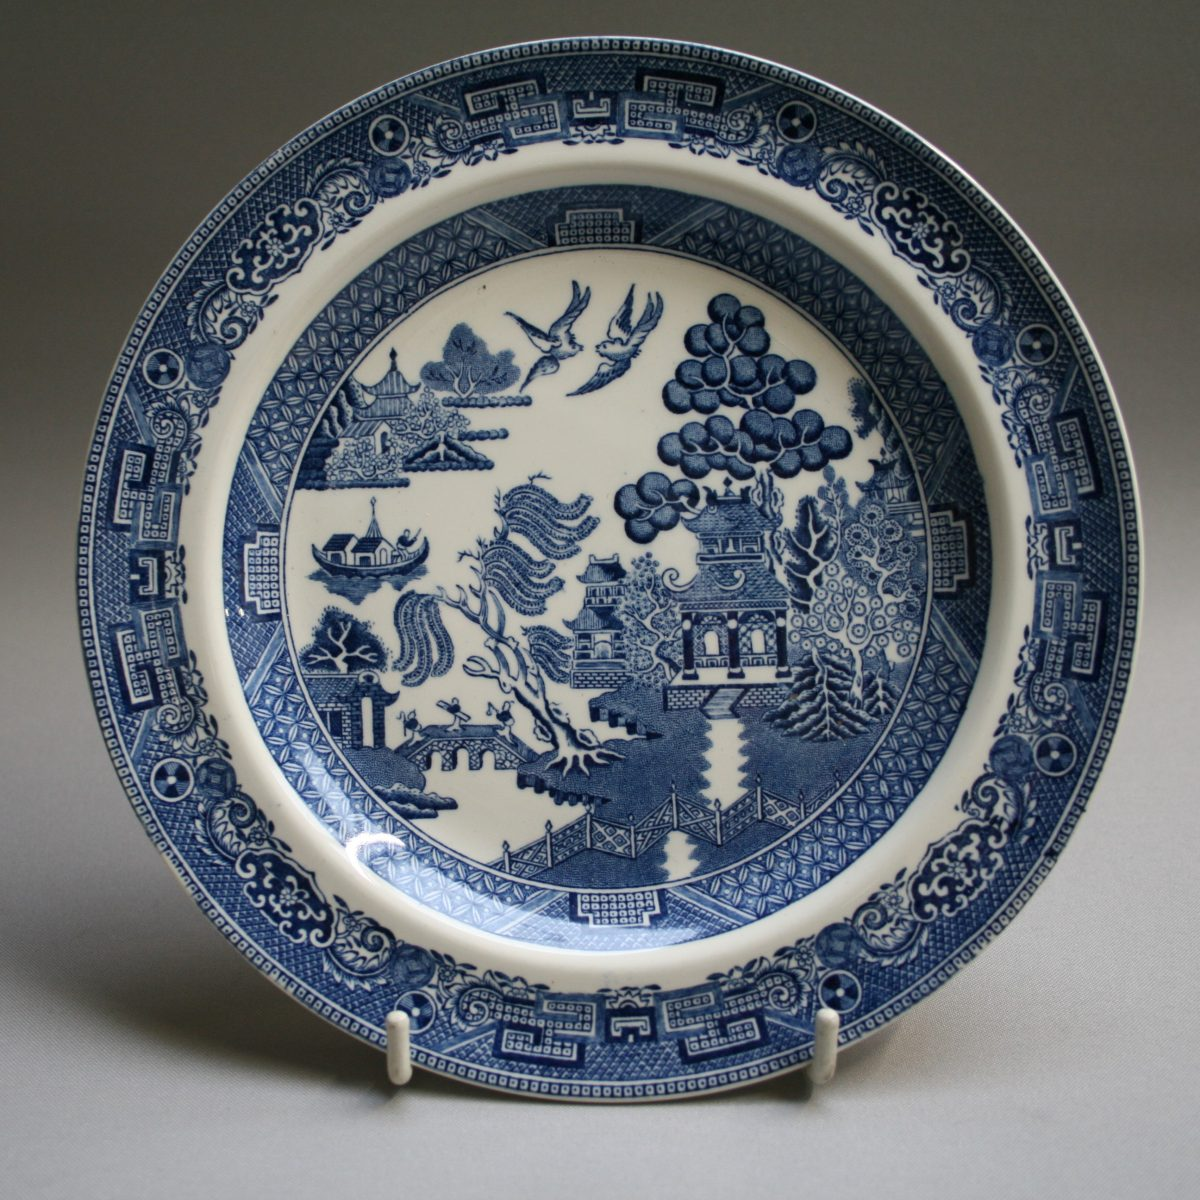 Wedgwood blue and white plate in the Willow pattern/williamsantiques